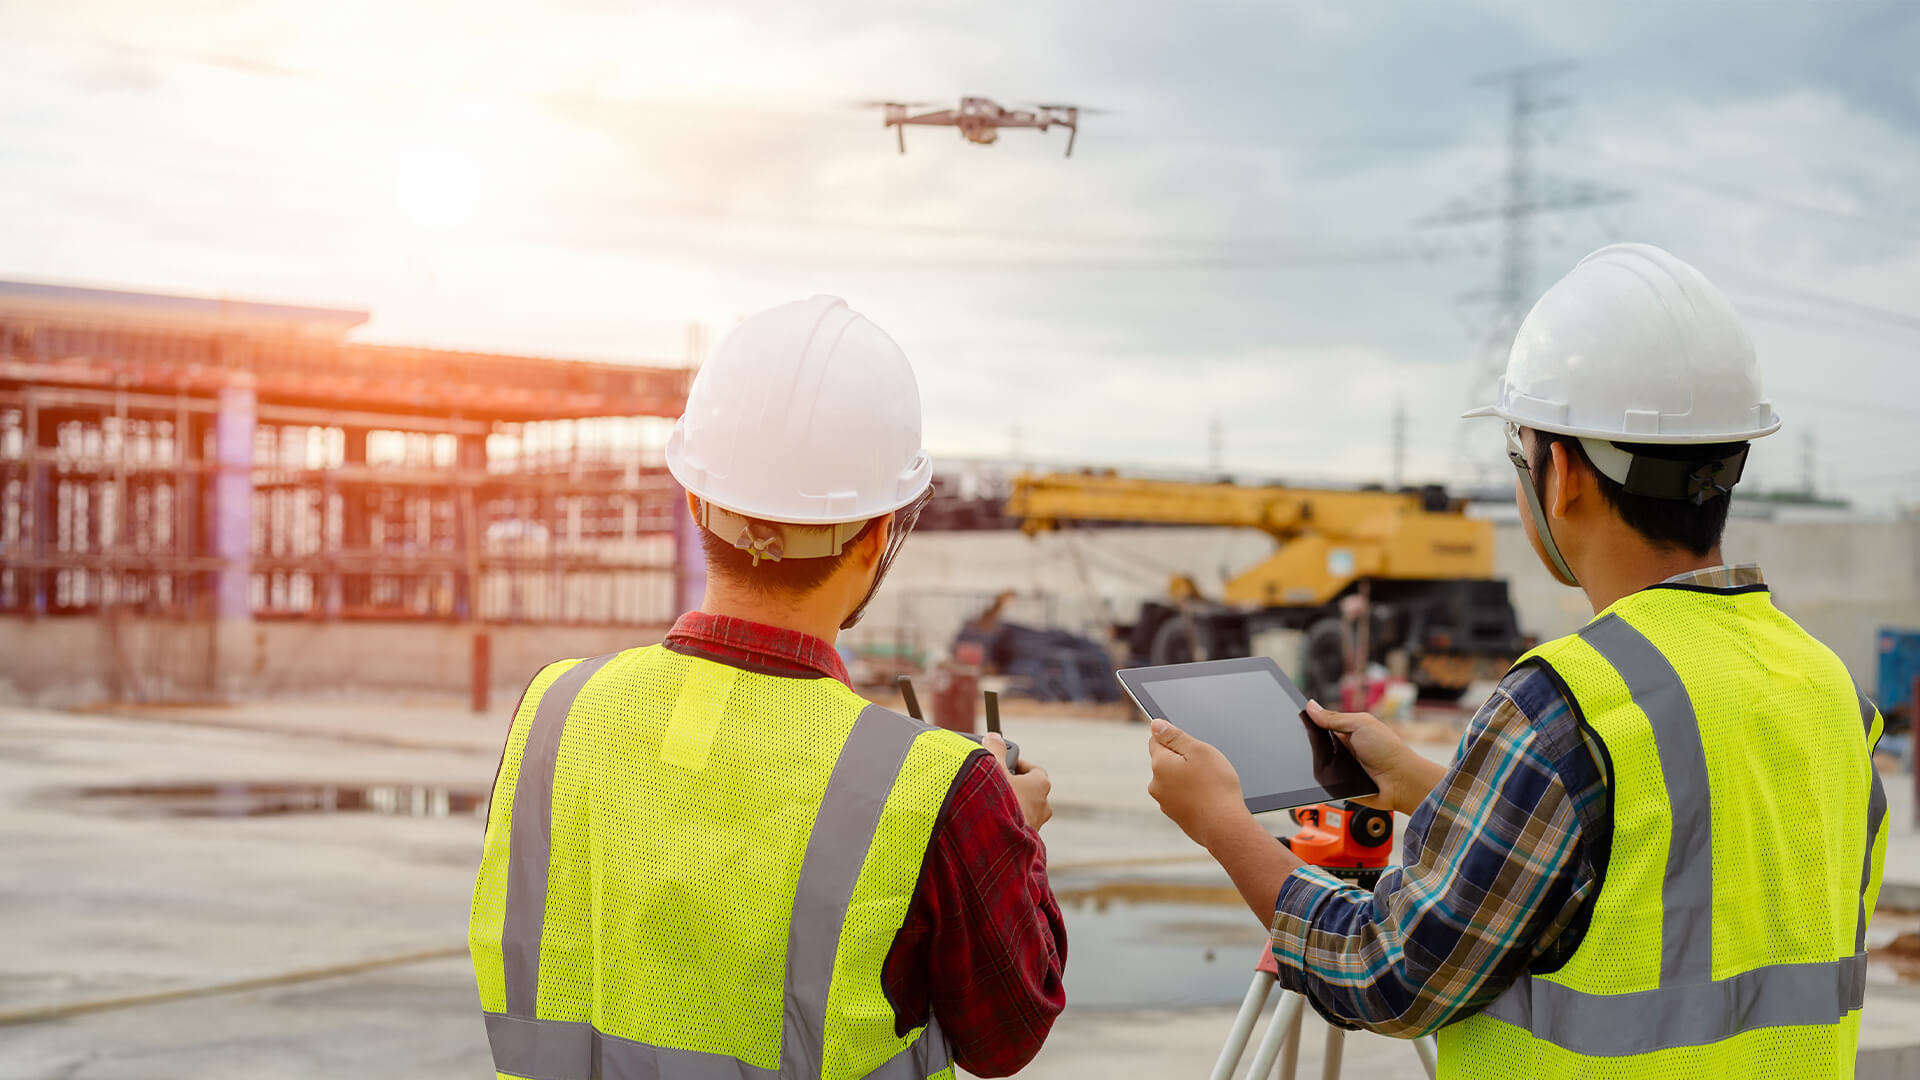 Two construction workers on site with a drone and tablet to map out the area